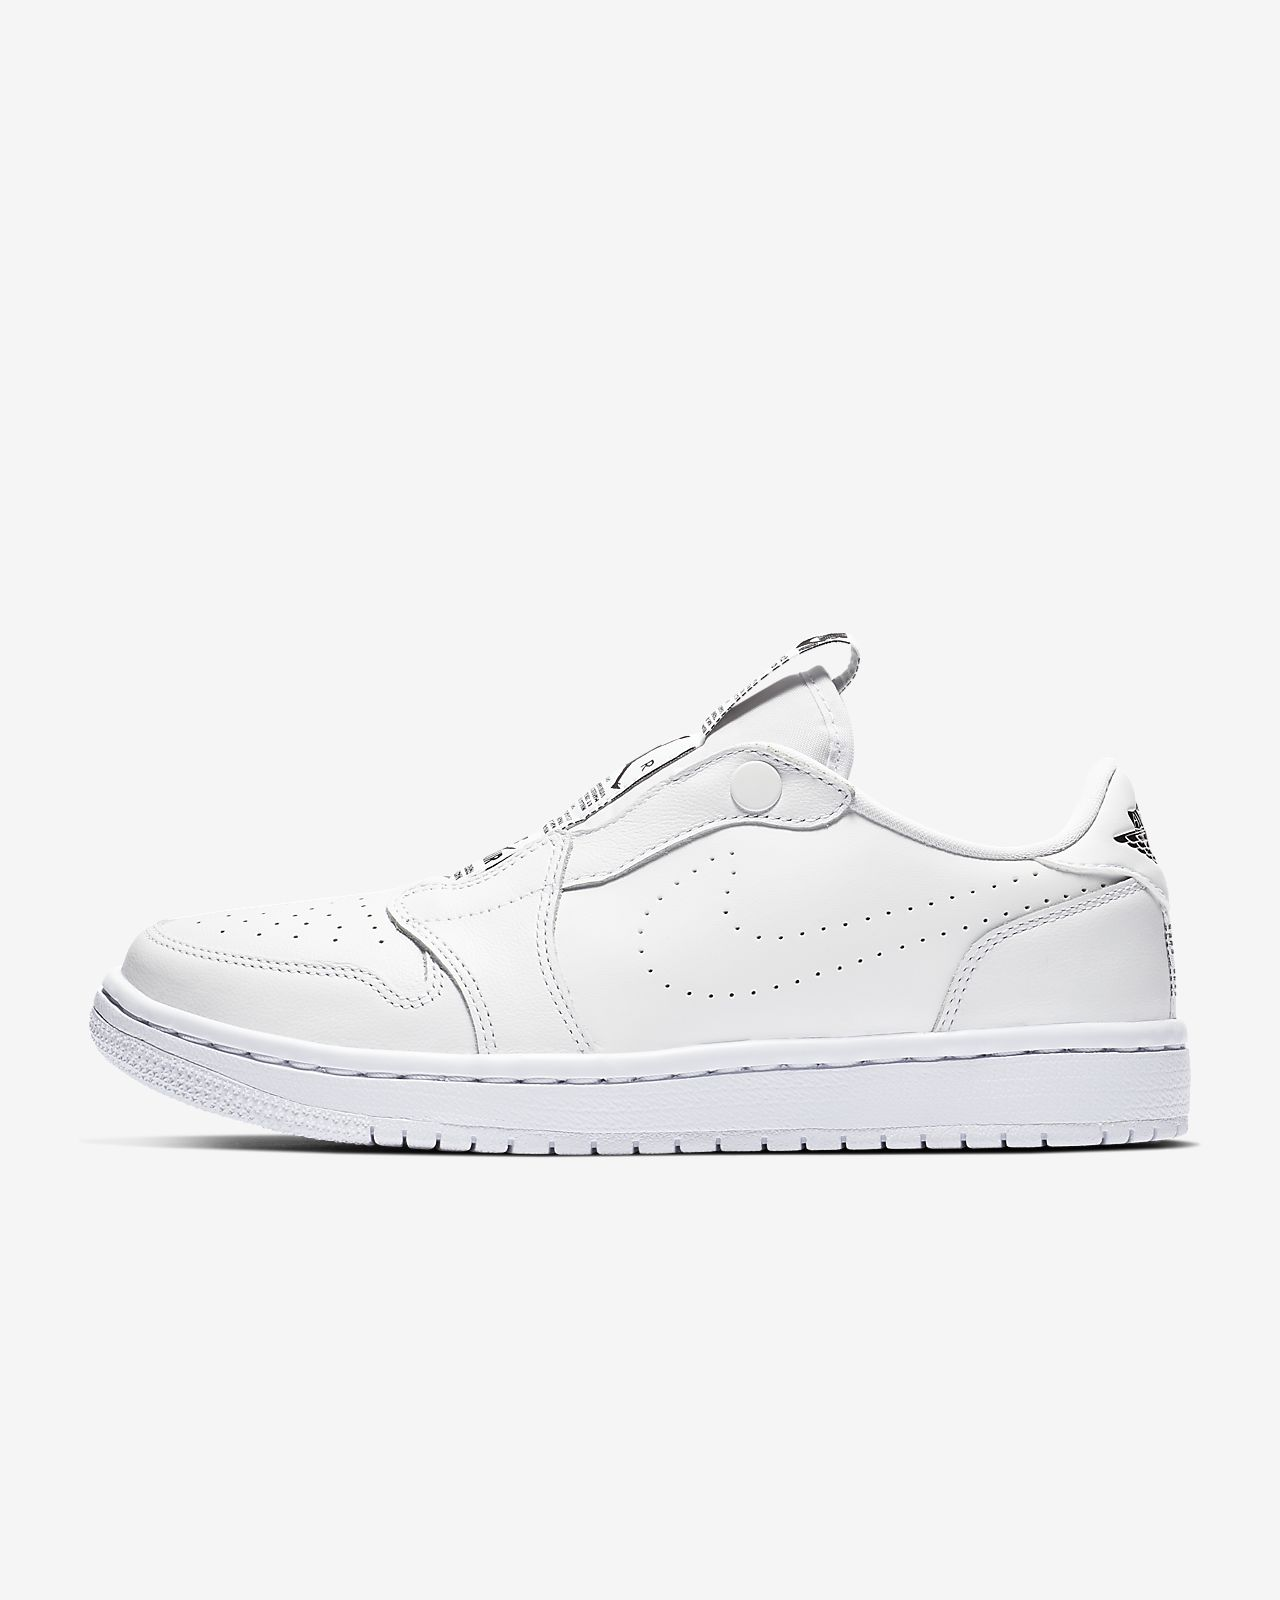 aa61c7311dec Air Jordan 1 Retro Low Slip Women s Shoe. Nike.com